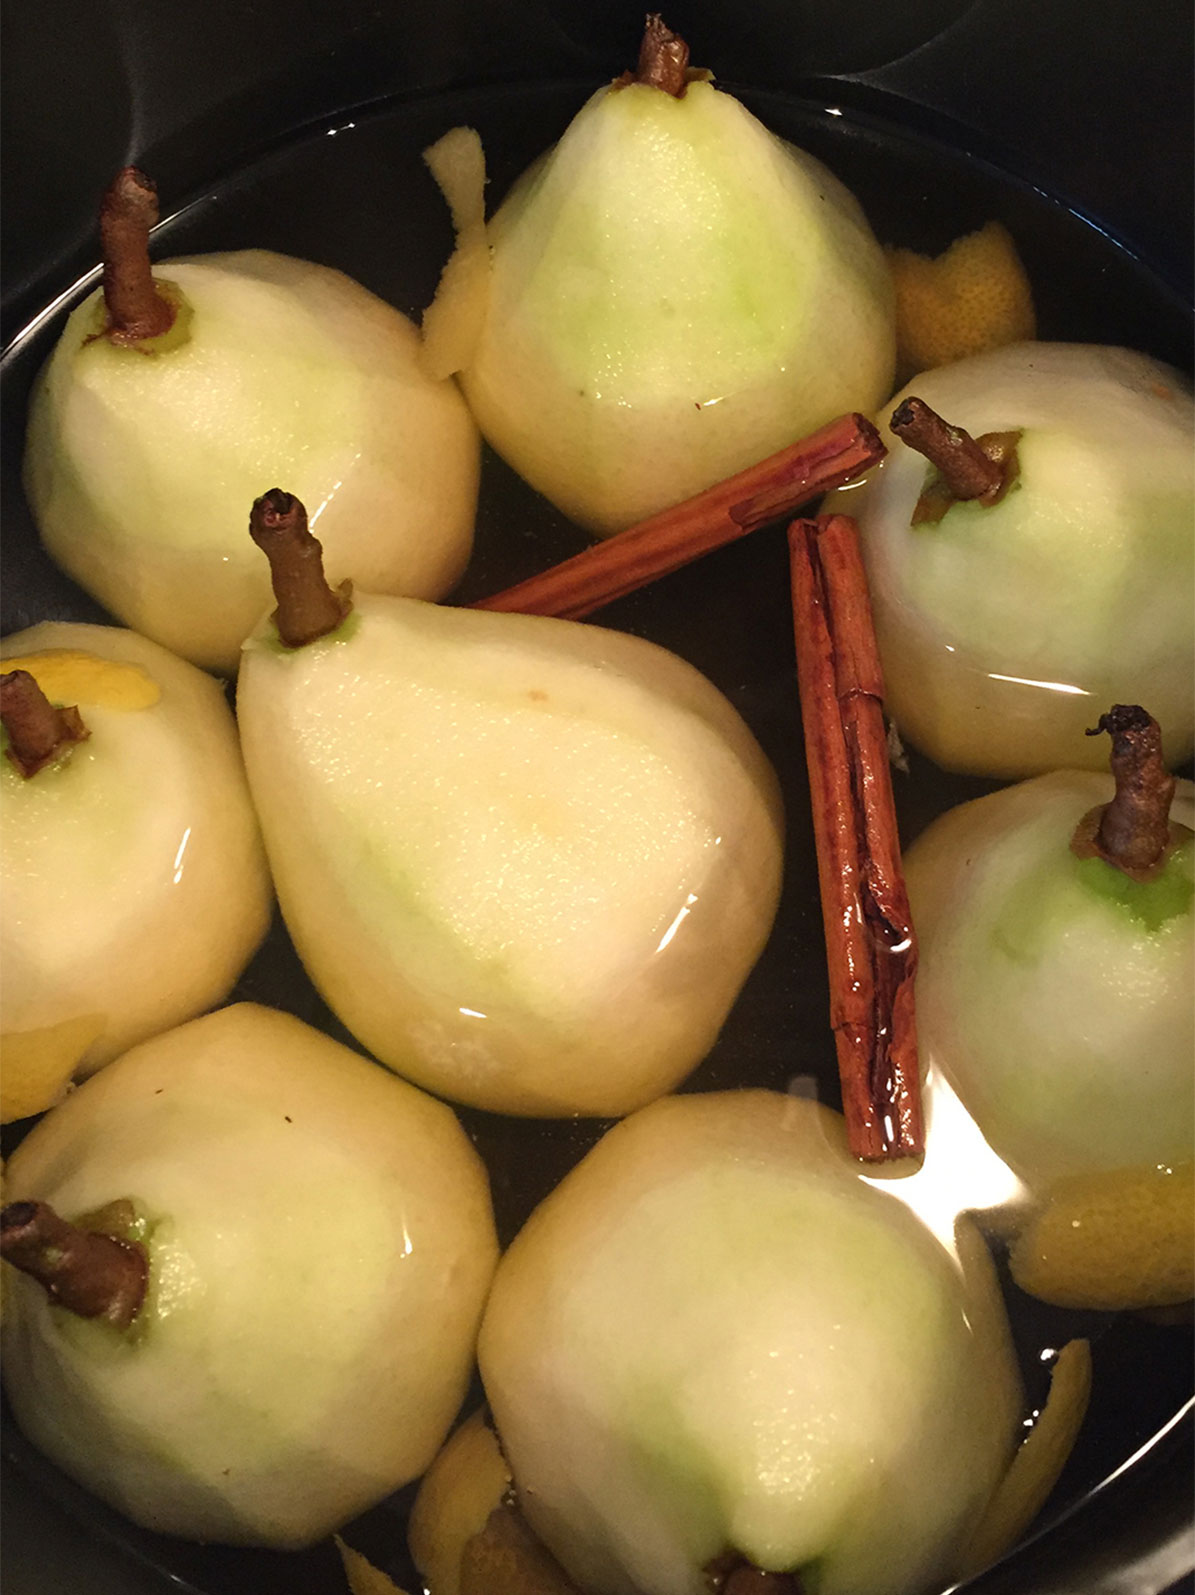 poach the pears upright